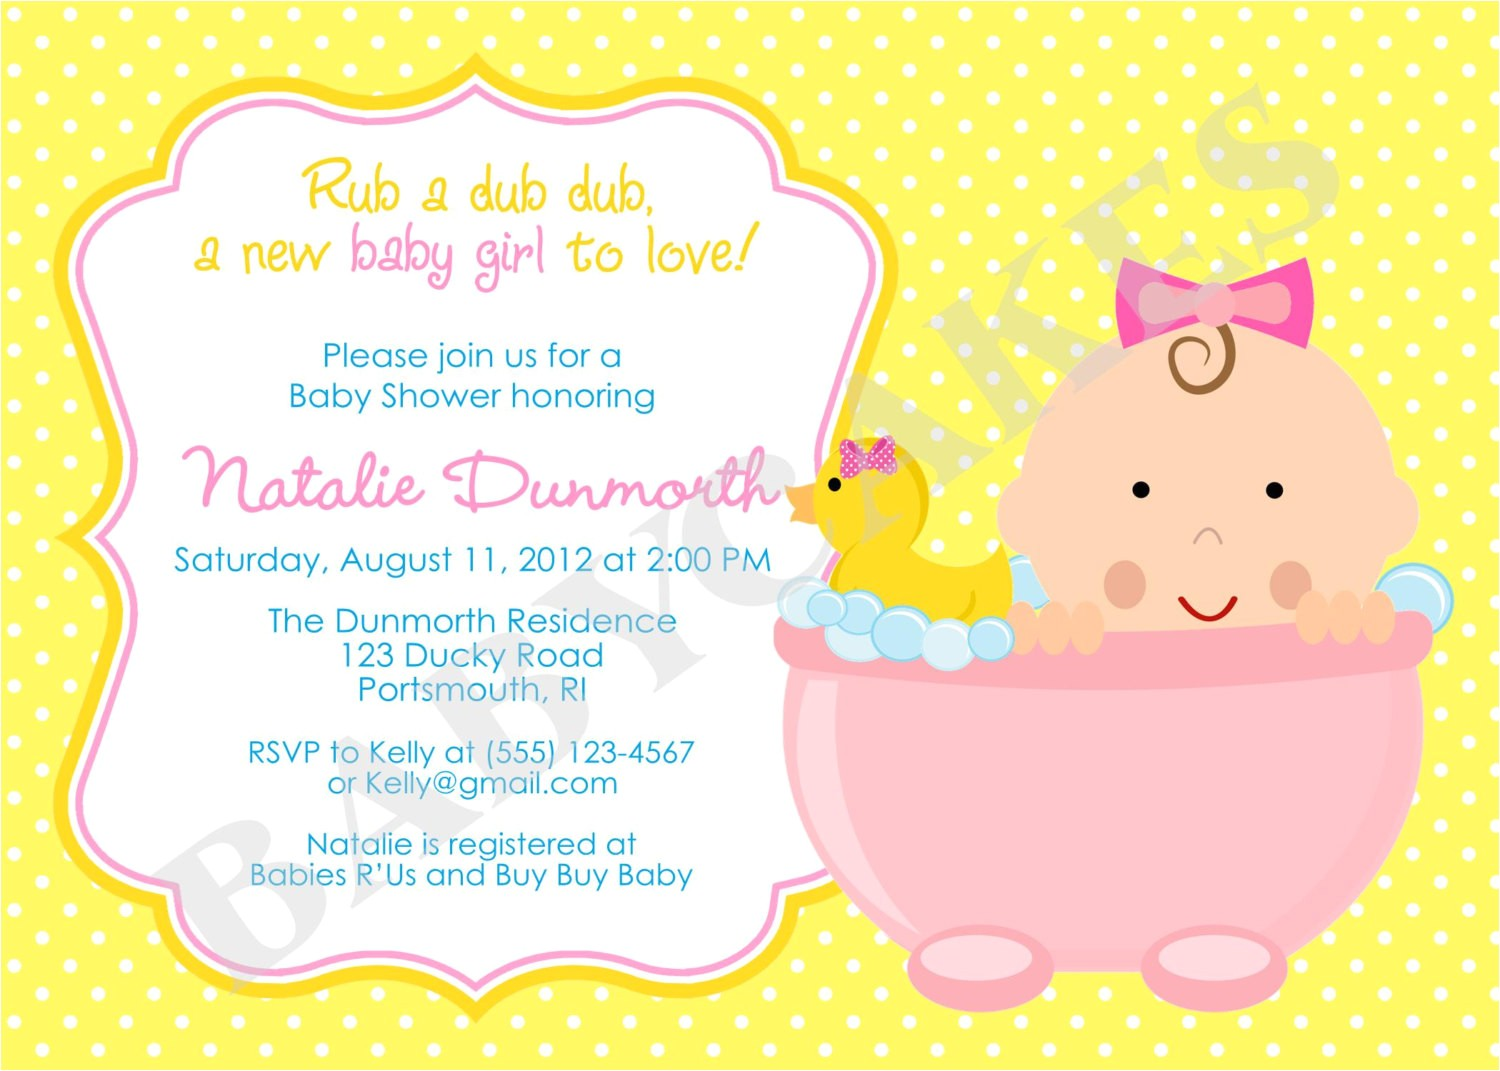 how to plan rubber ducky baby shower ideas